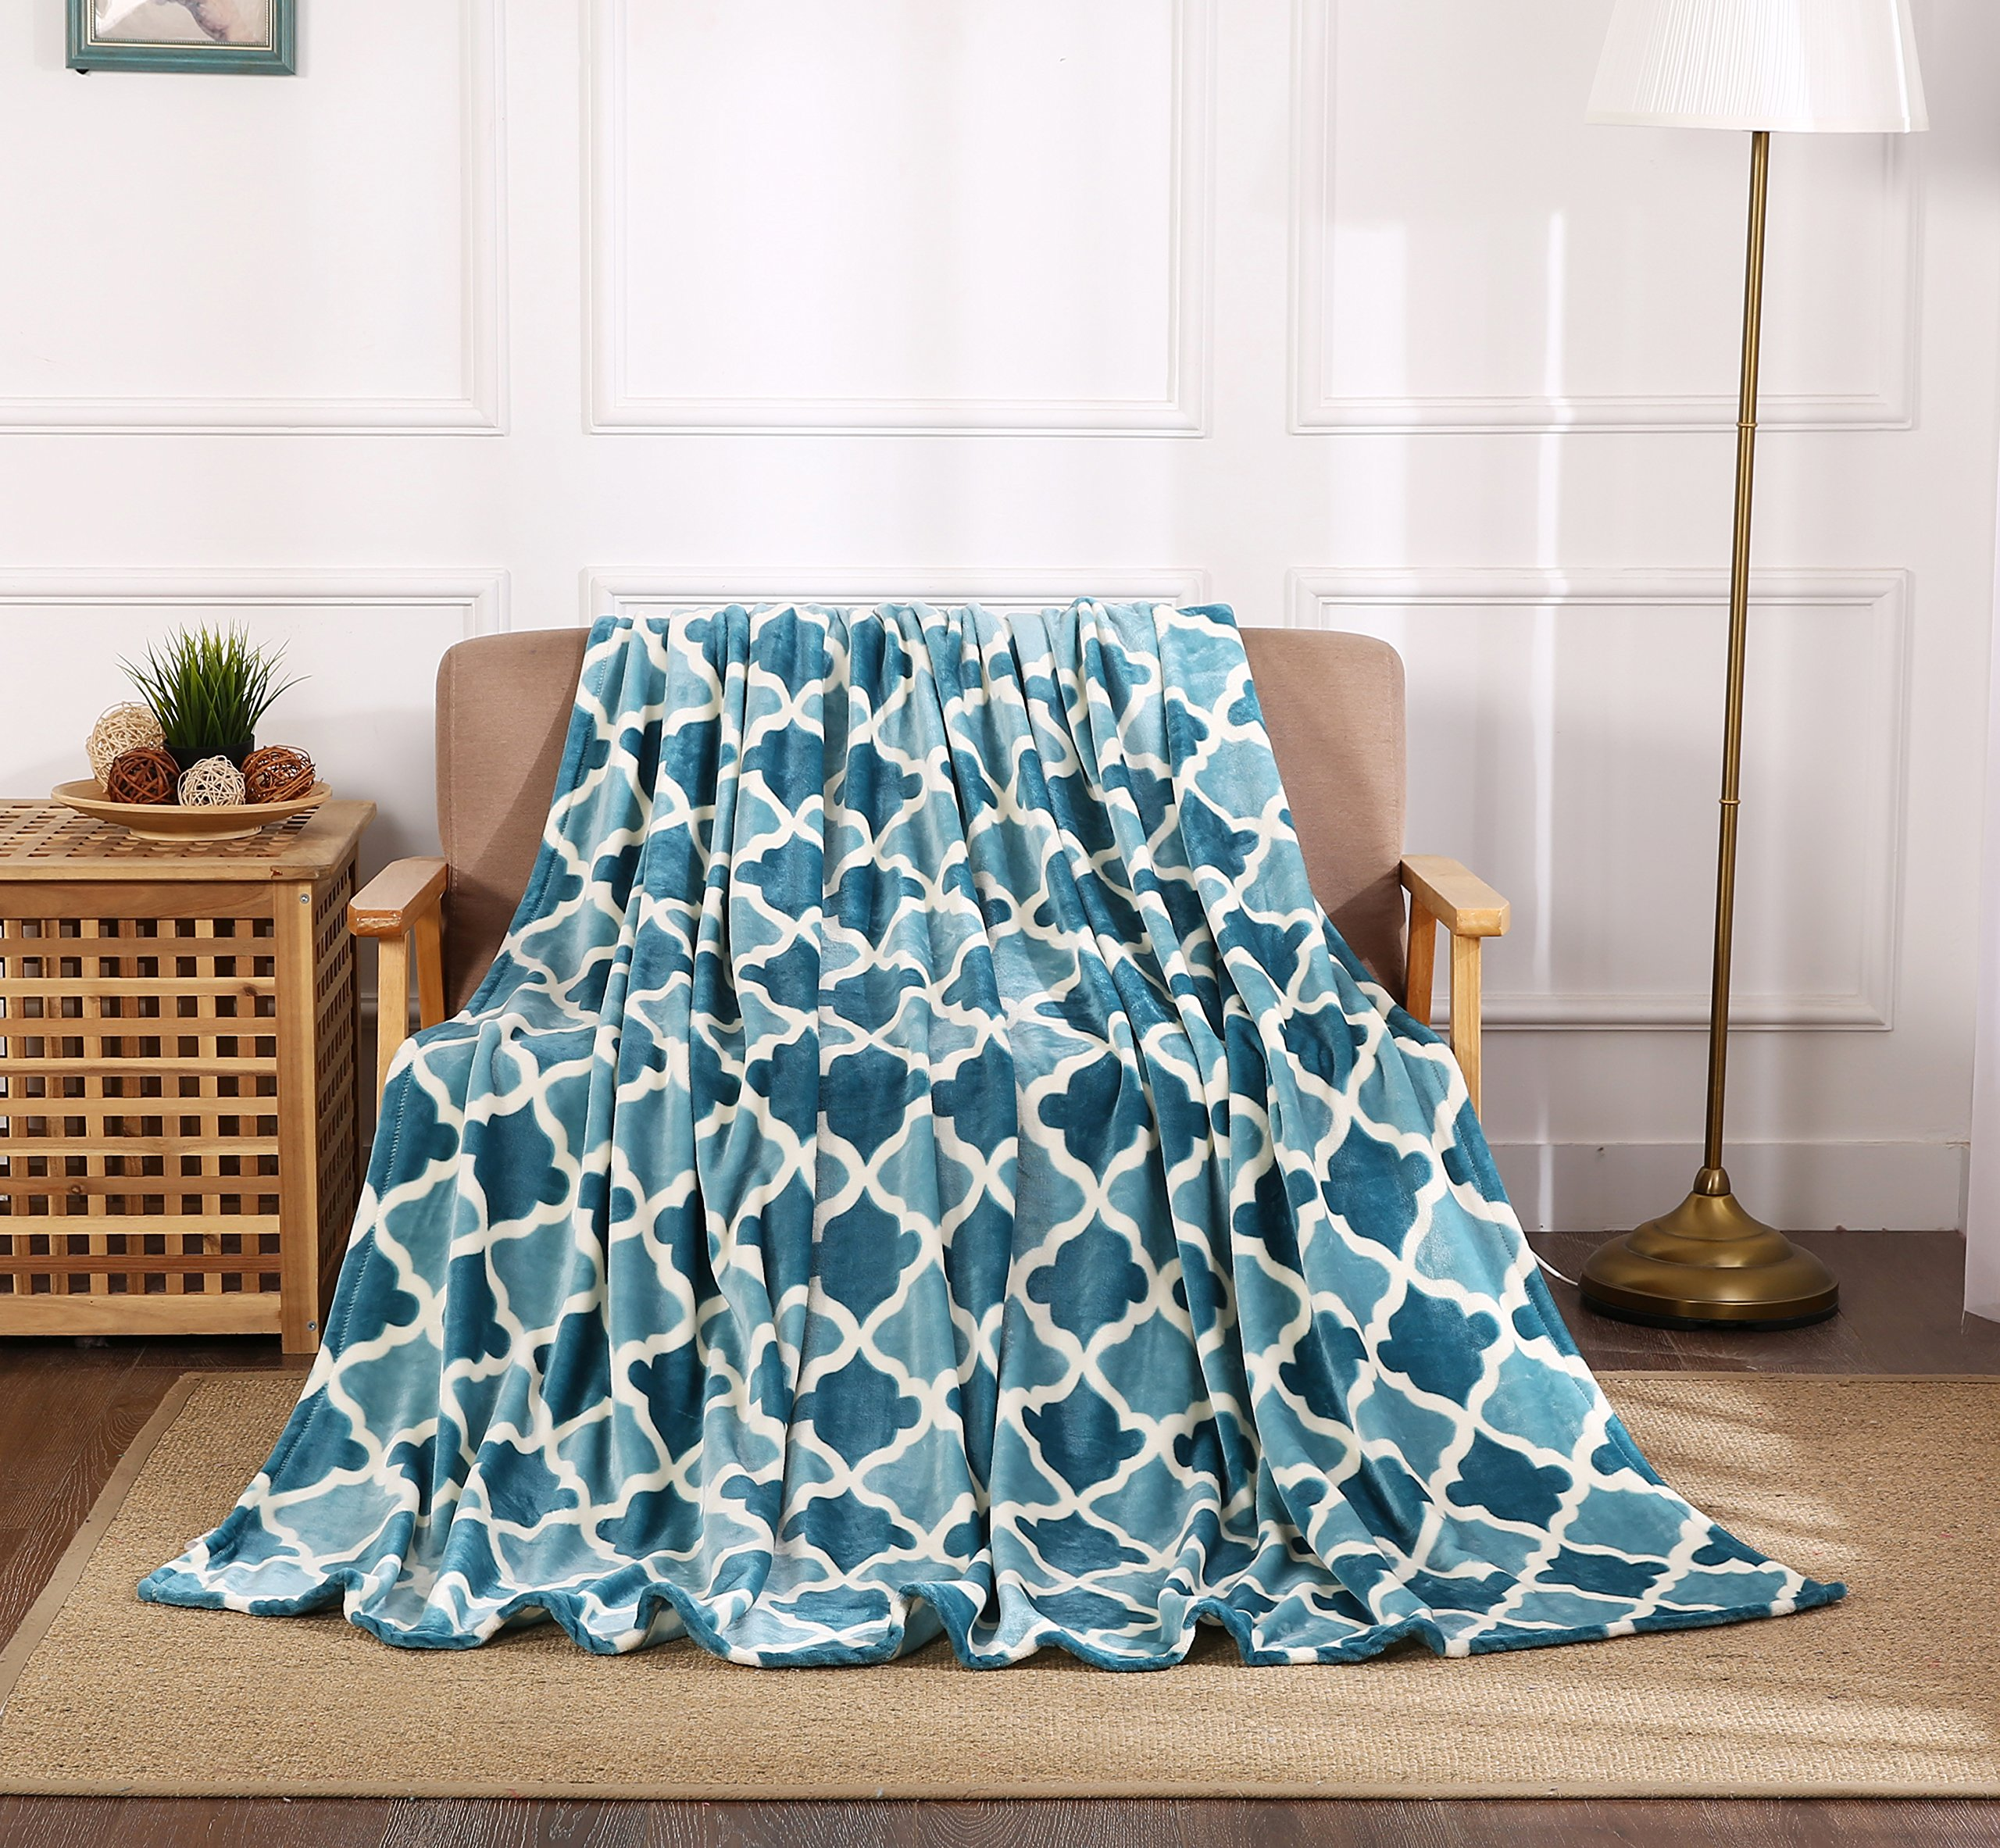 All American Collection New Super Soft Printed Throw Blanket (Throw Size, Teal/Aqua Trellis)